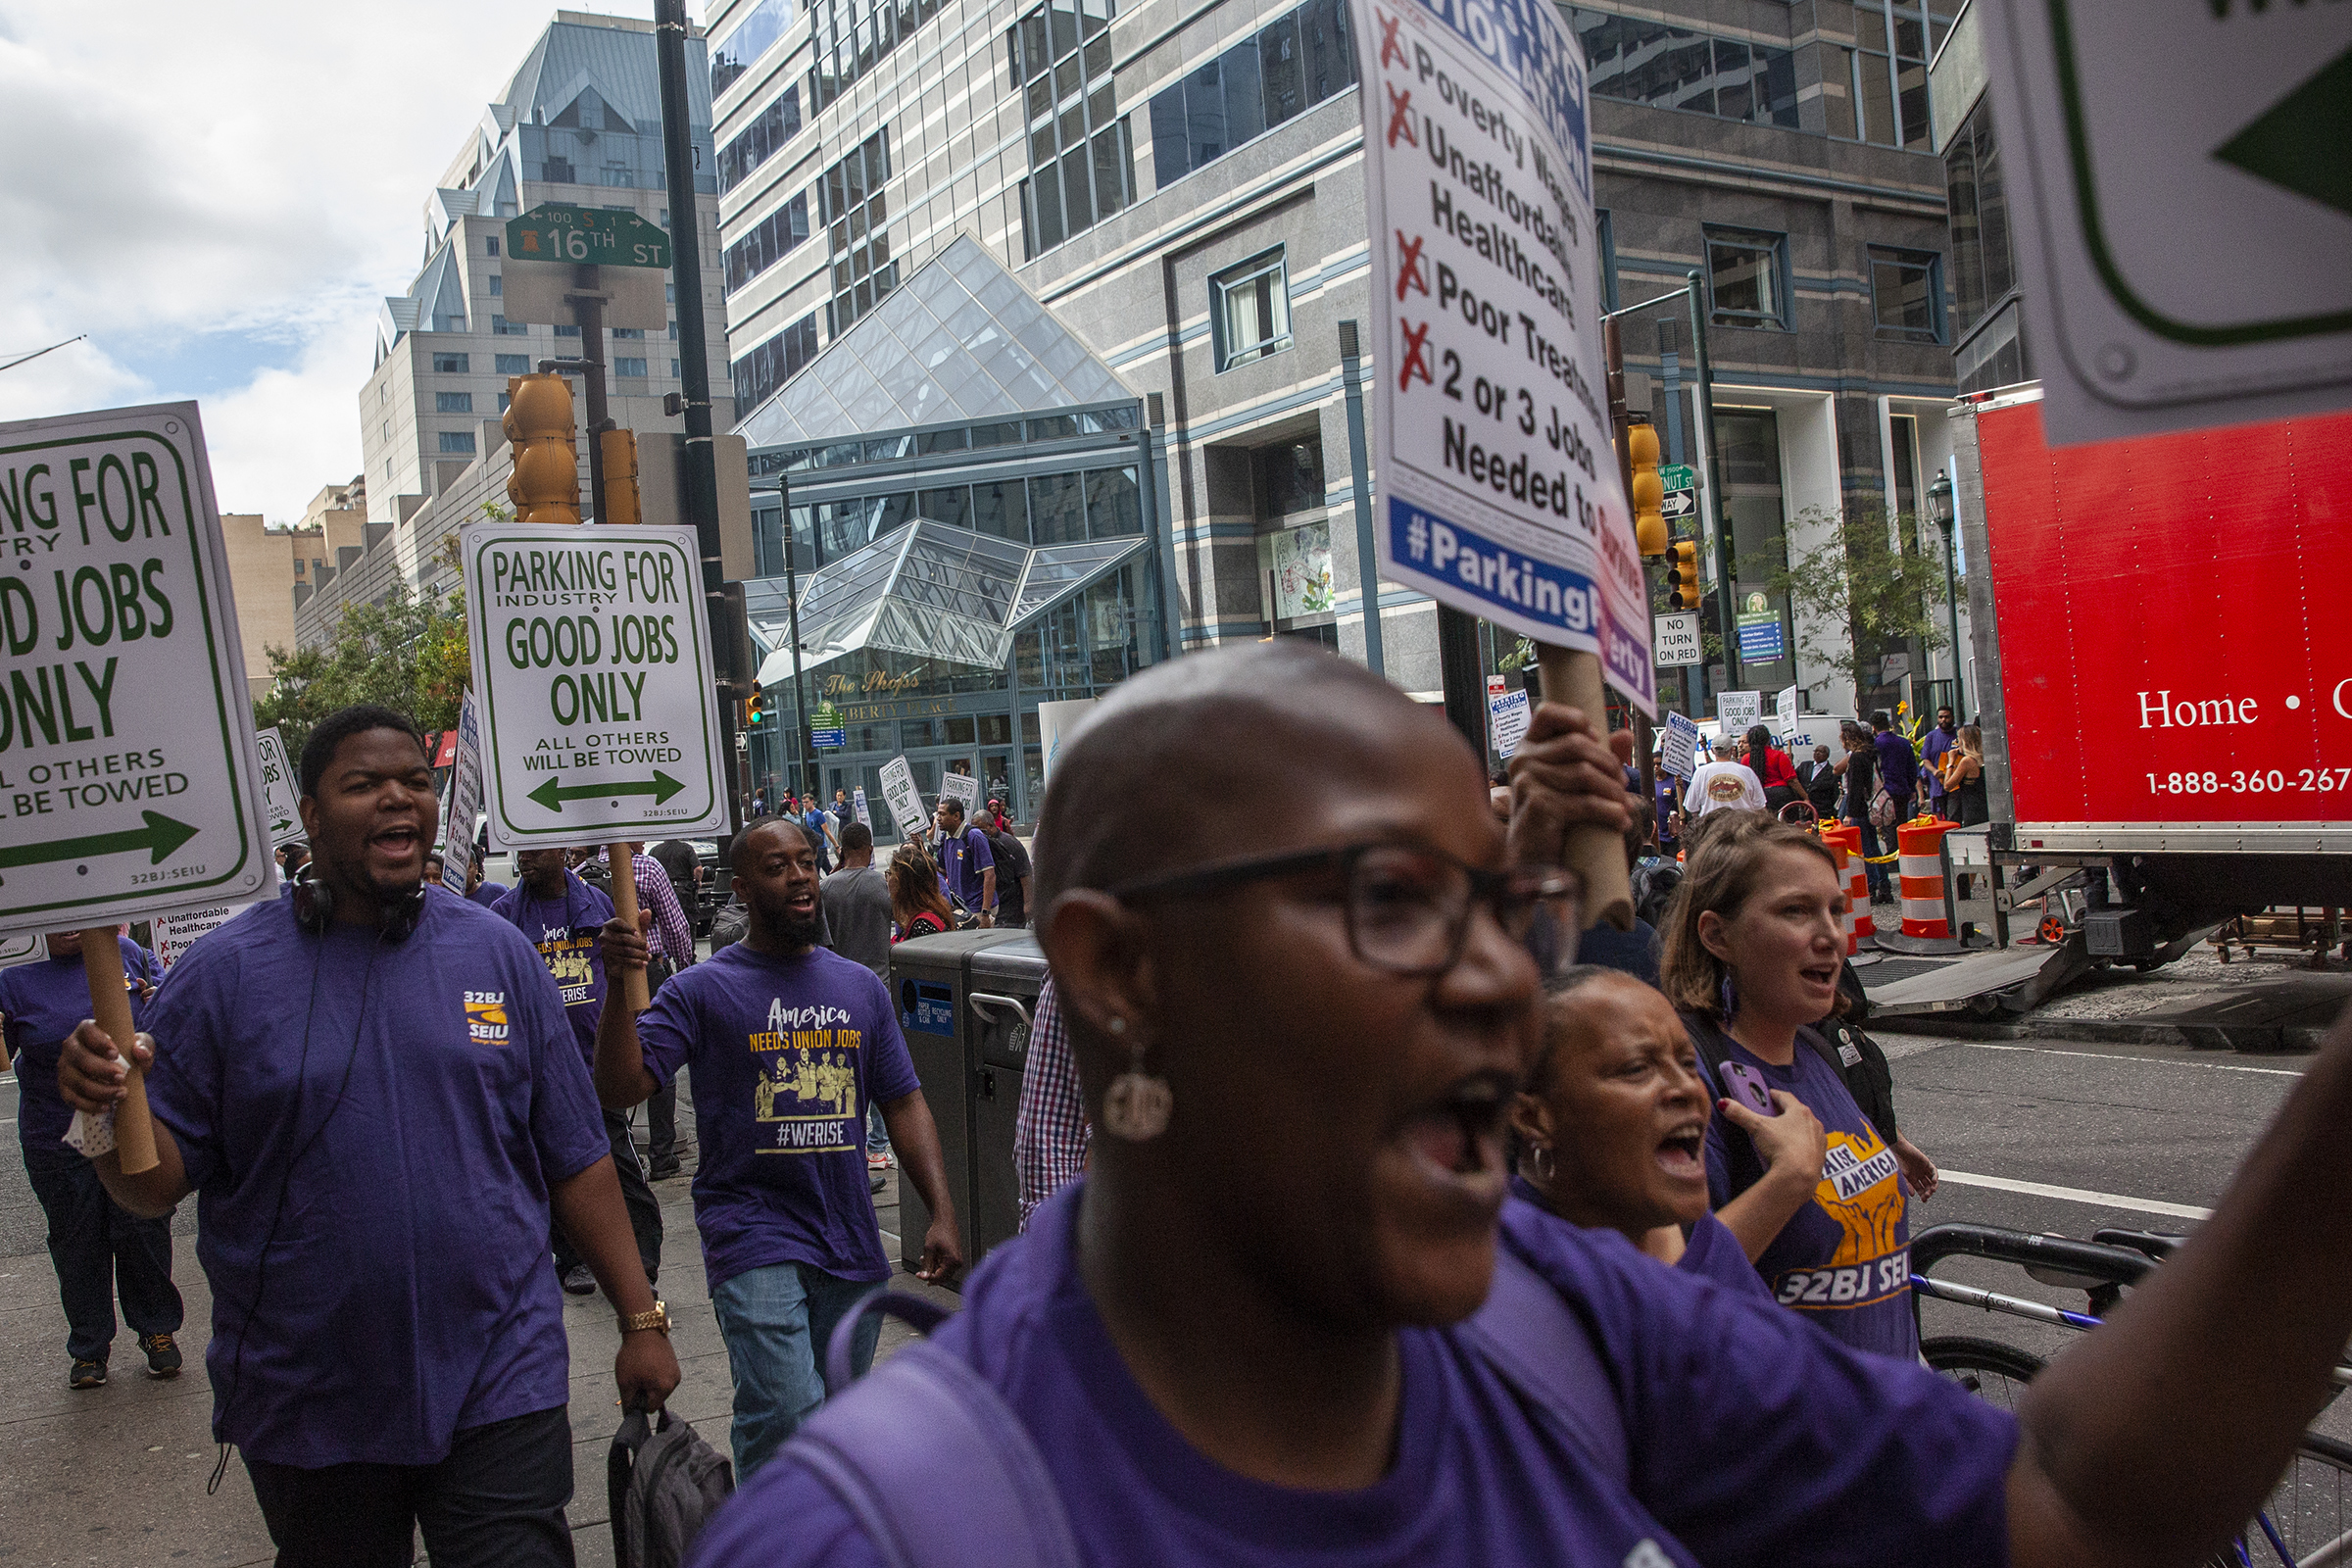 About 50 parking lot attendants and 32BJ SEIU members marched down 16th Street in Center City on Thursday afternoon to raise awareness for the parking lot workers� bid to unionize.